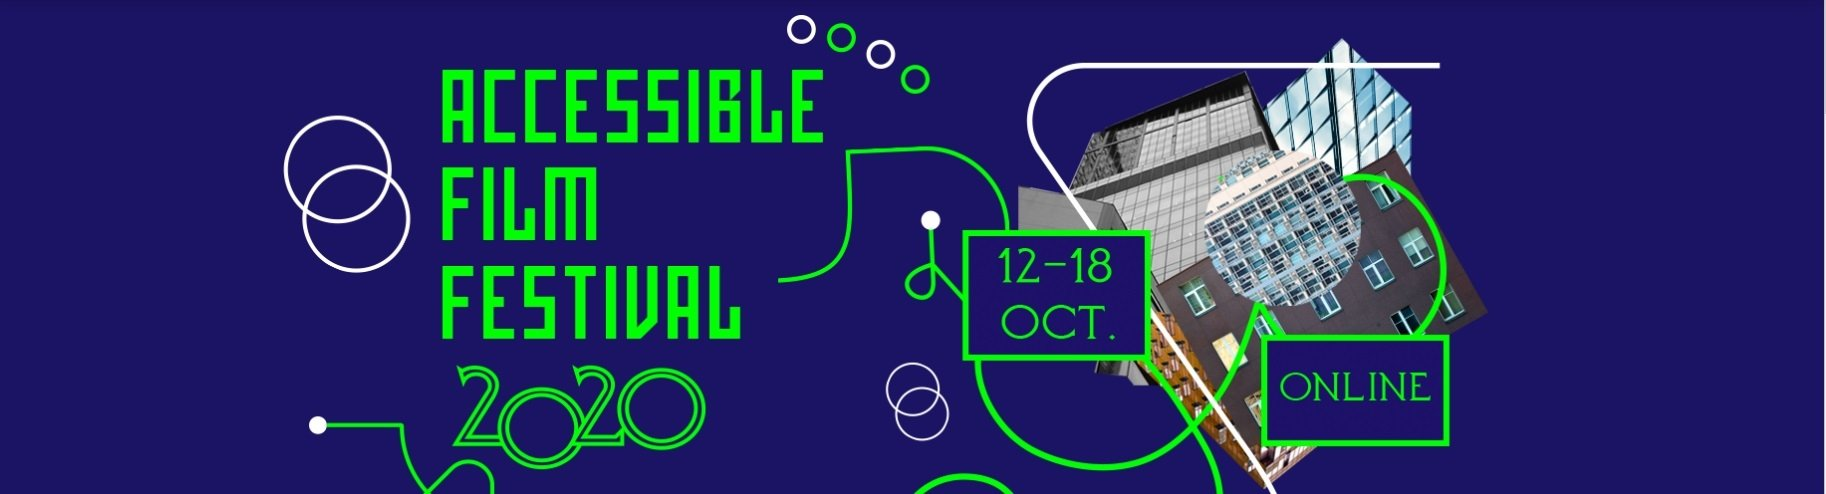 A poster of the Accessible Film Festival 2020.